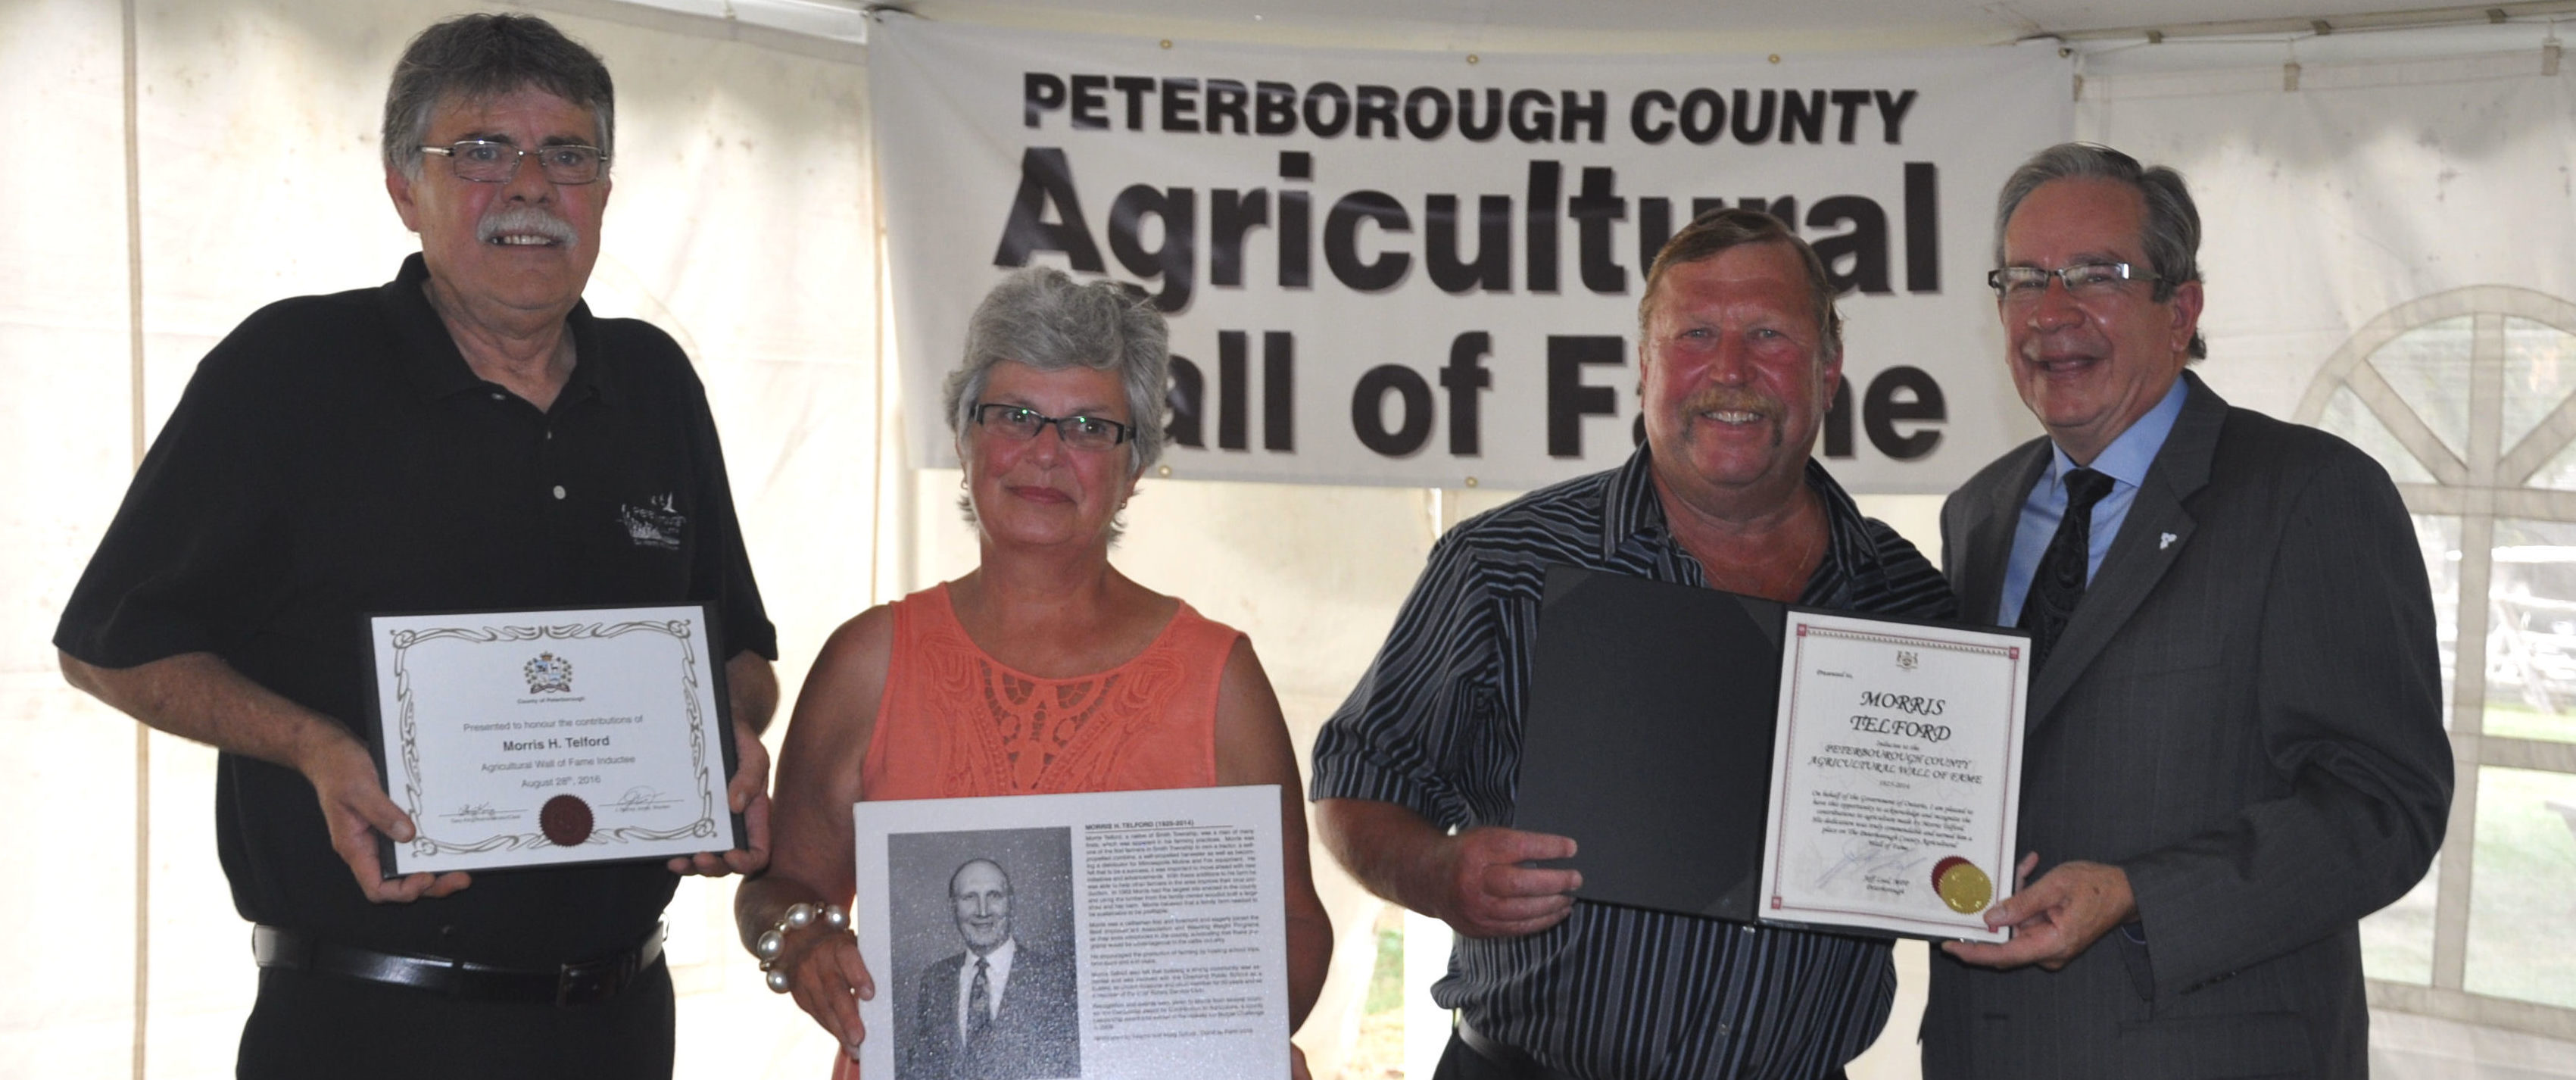 Jay Murray Jones, Warden, Marg and Wayne Telford, Jeff Leal MPP